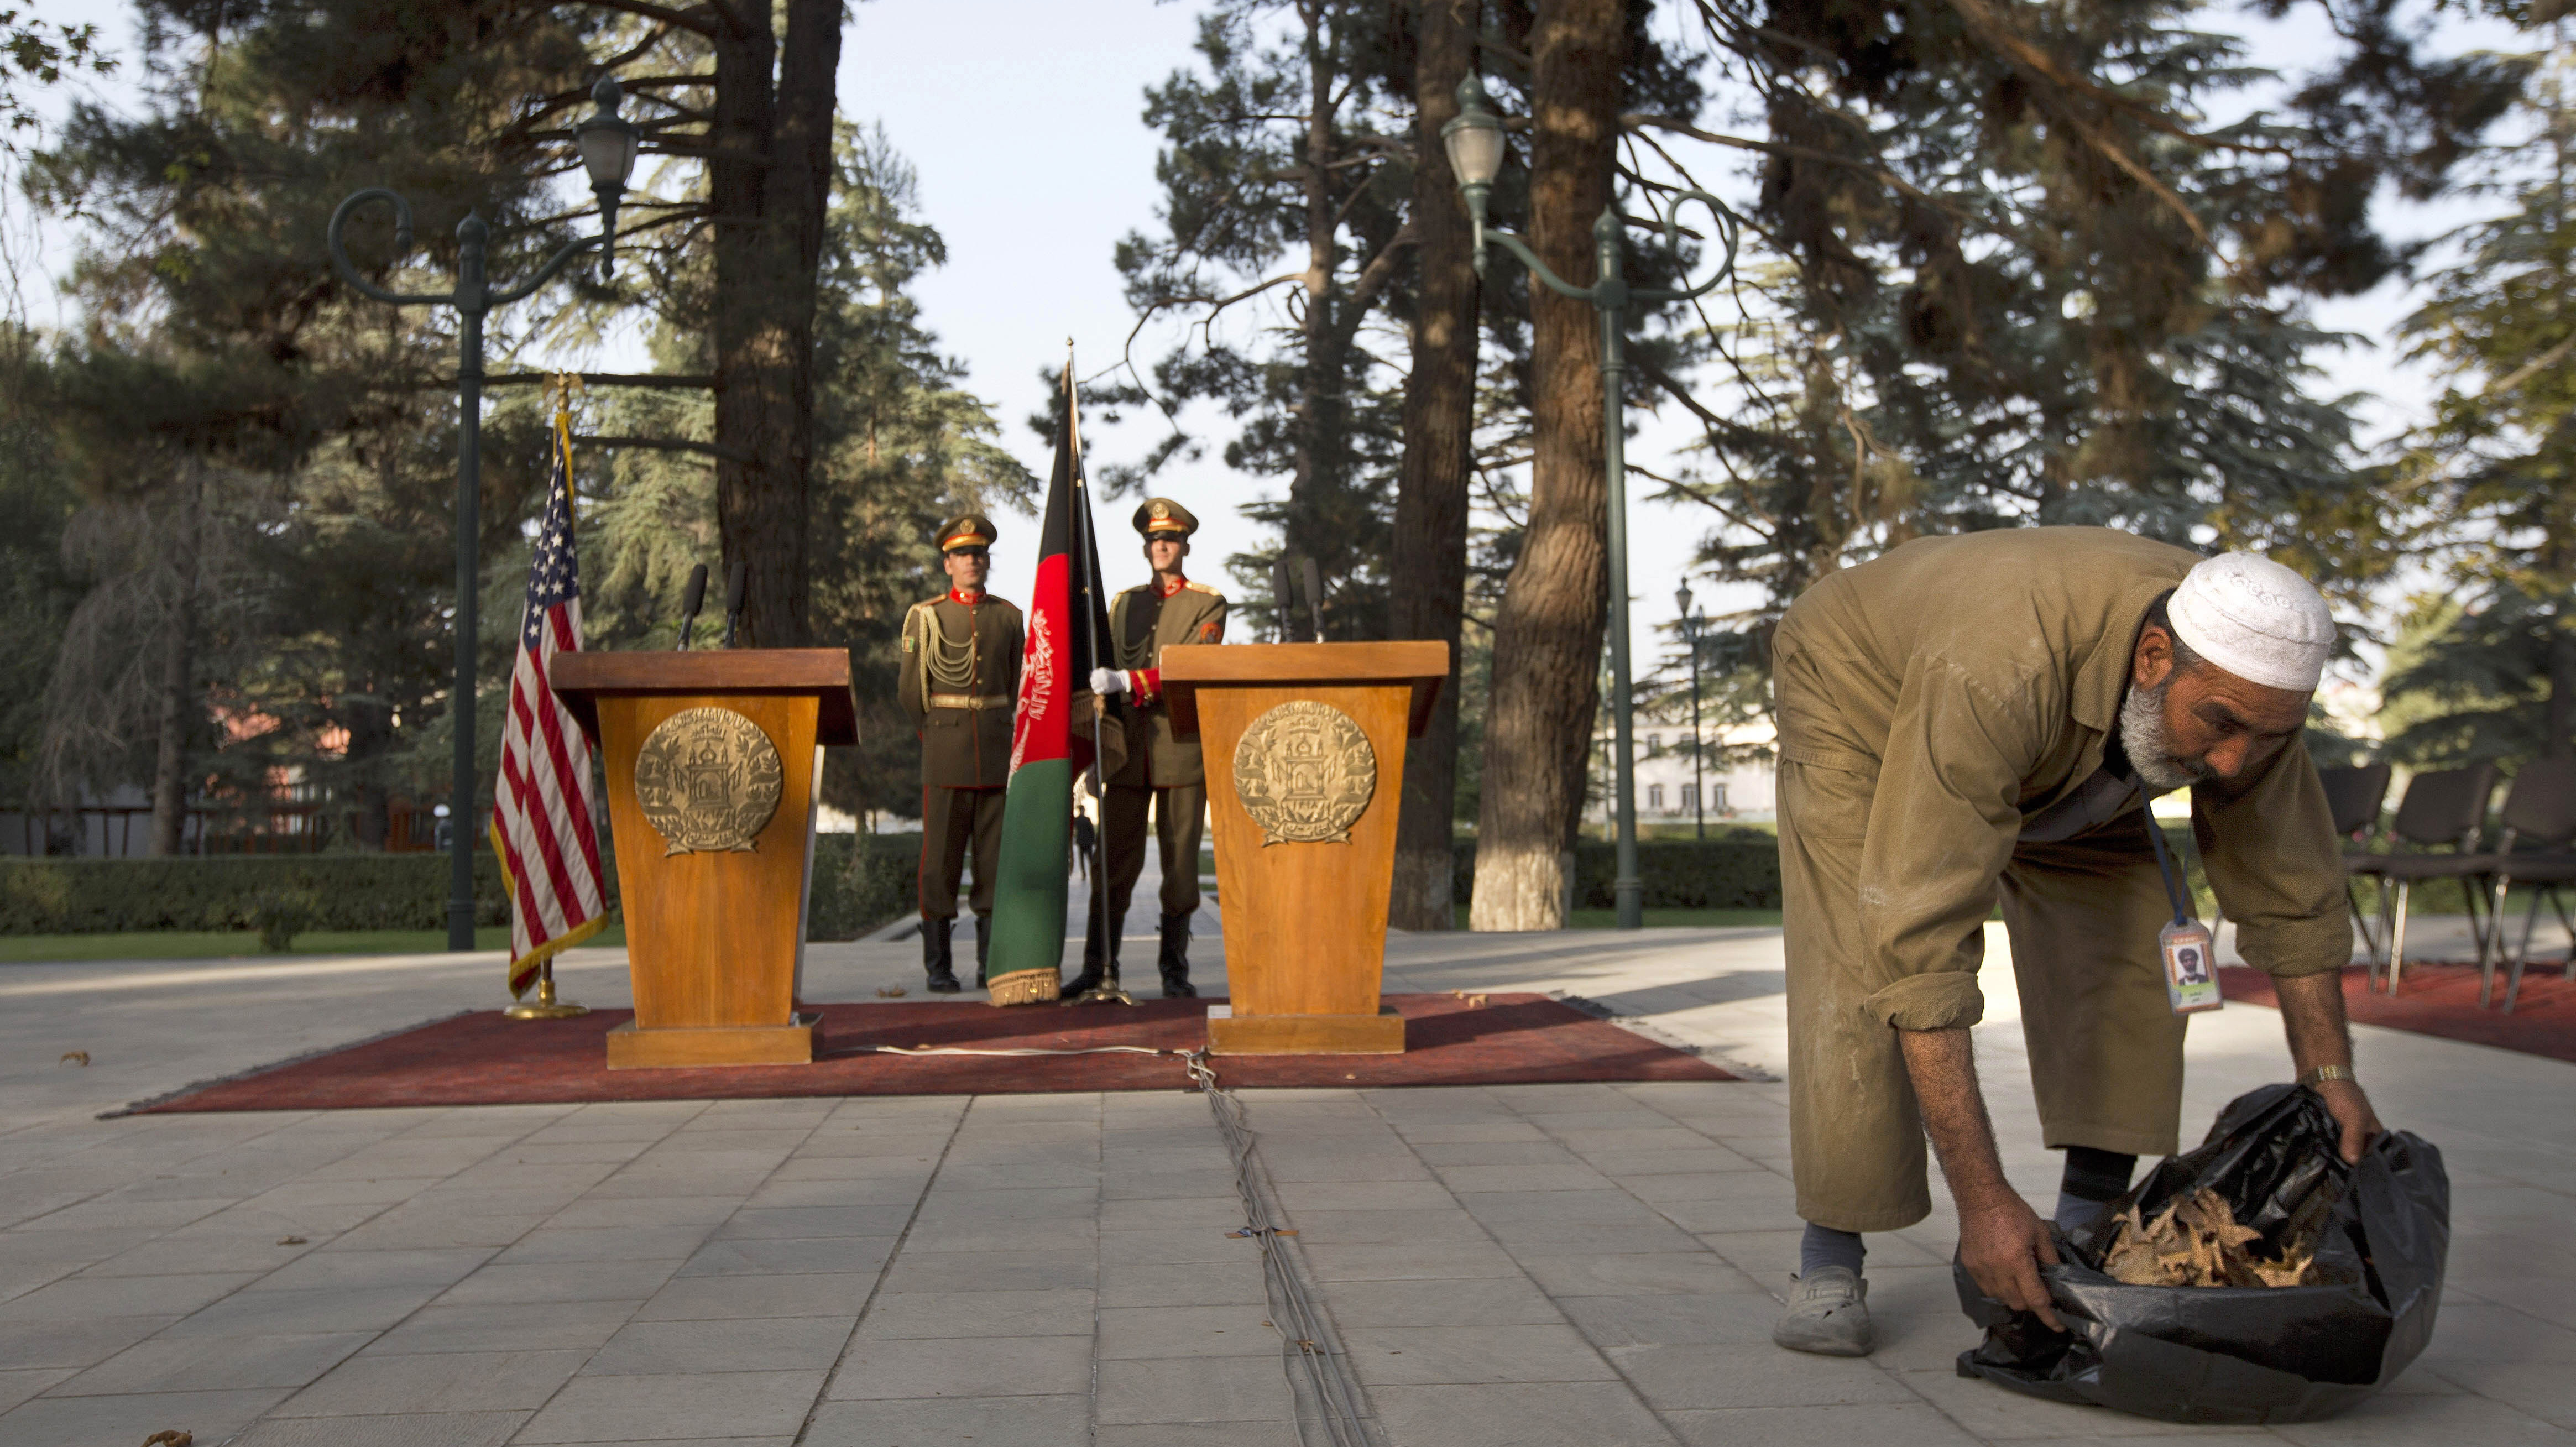 Kerry And Karzai Meet To Discuss U.S. Presence In Afghanistan